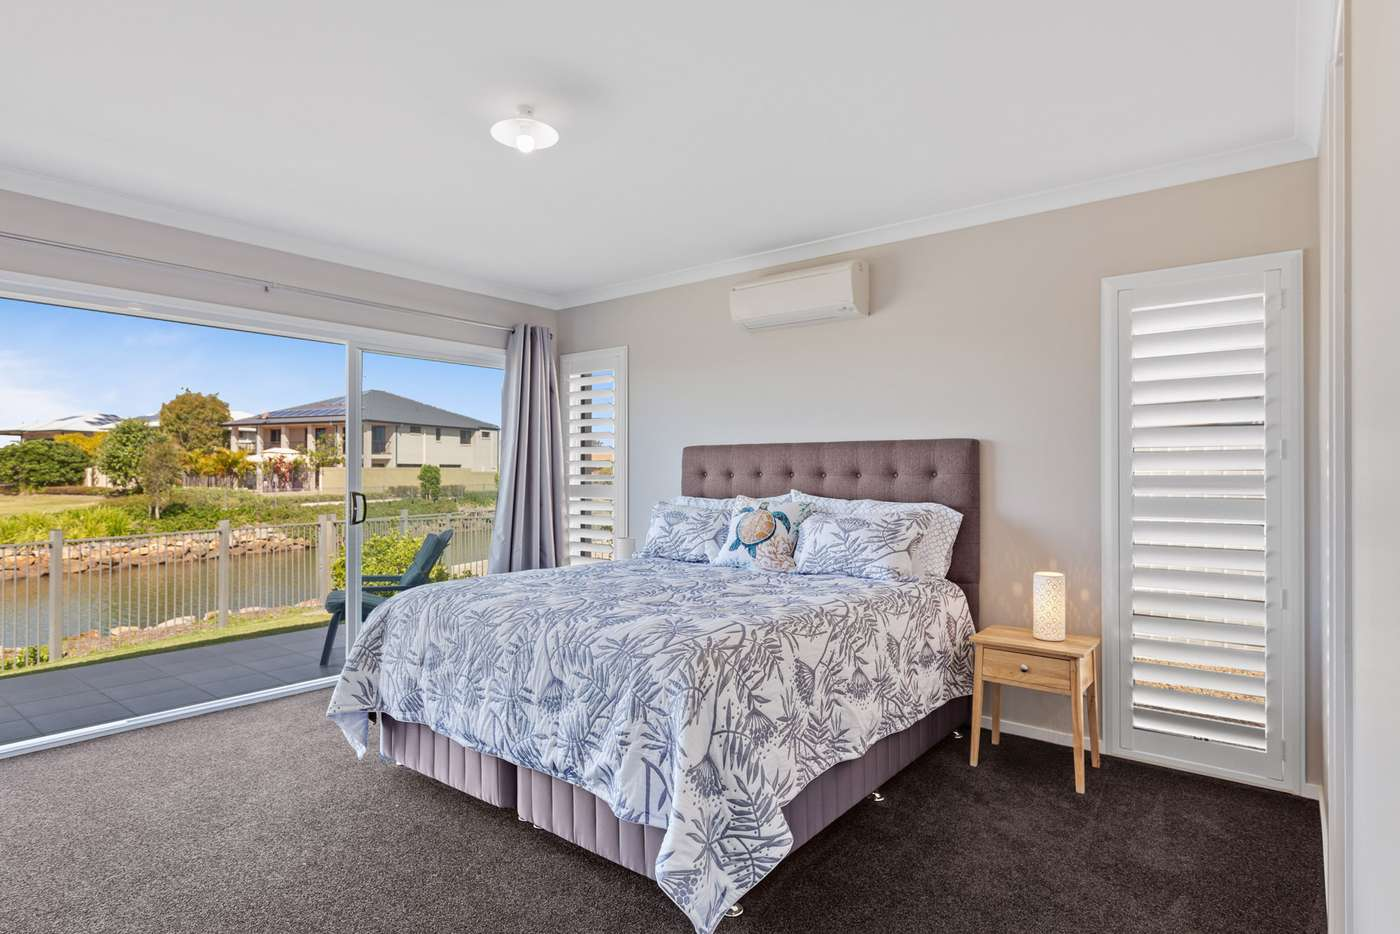 Seventh view of Homely house listing, 1 Seacrest Court, Banksia Beach QLD 4507